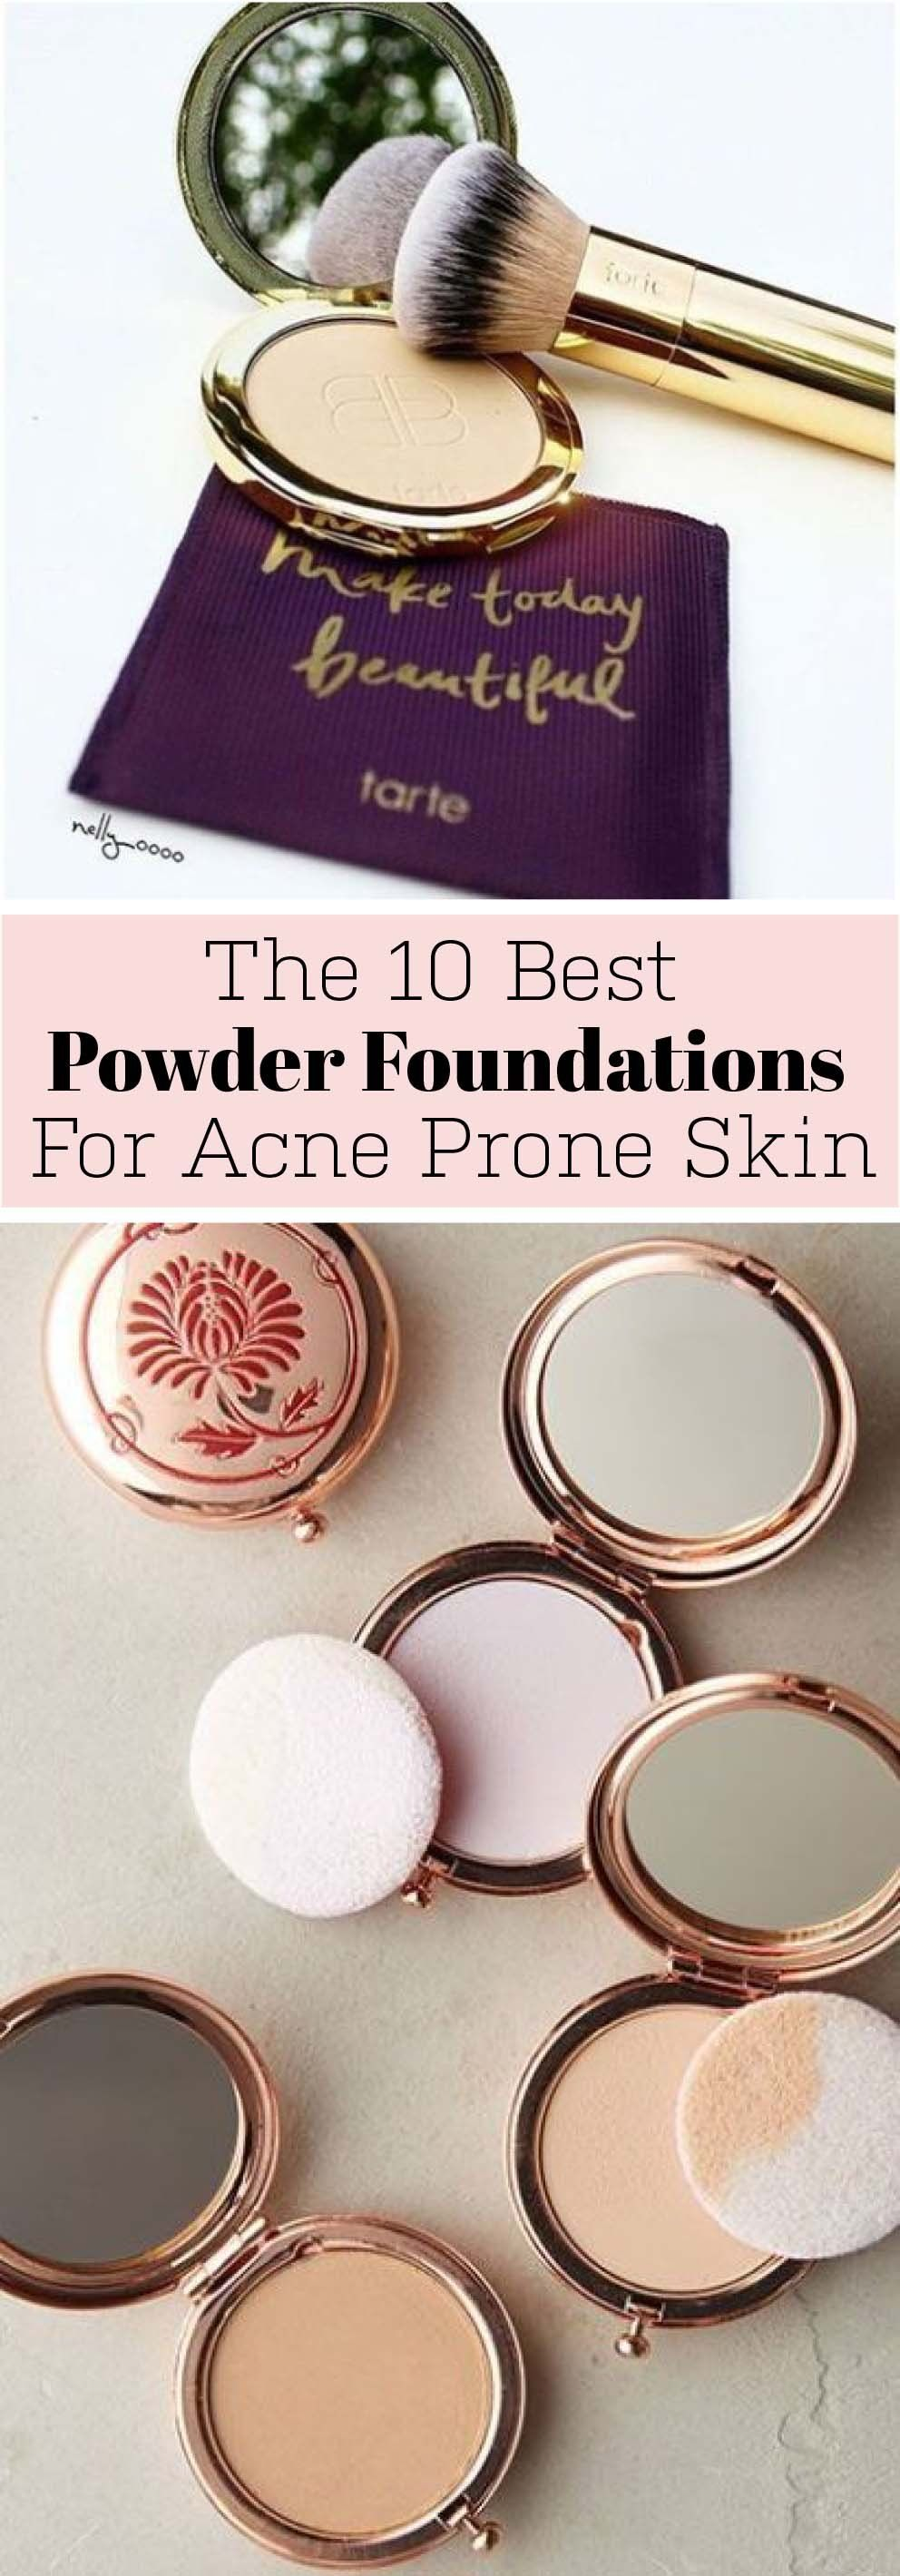 This is the best powder foundation for acne prone skin